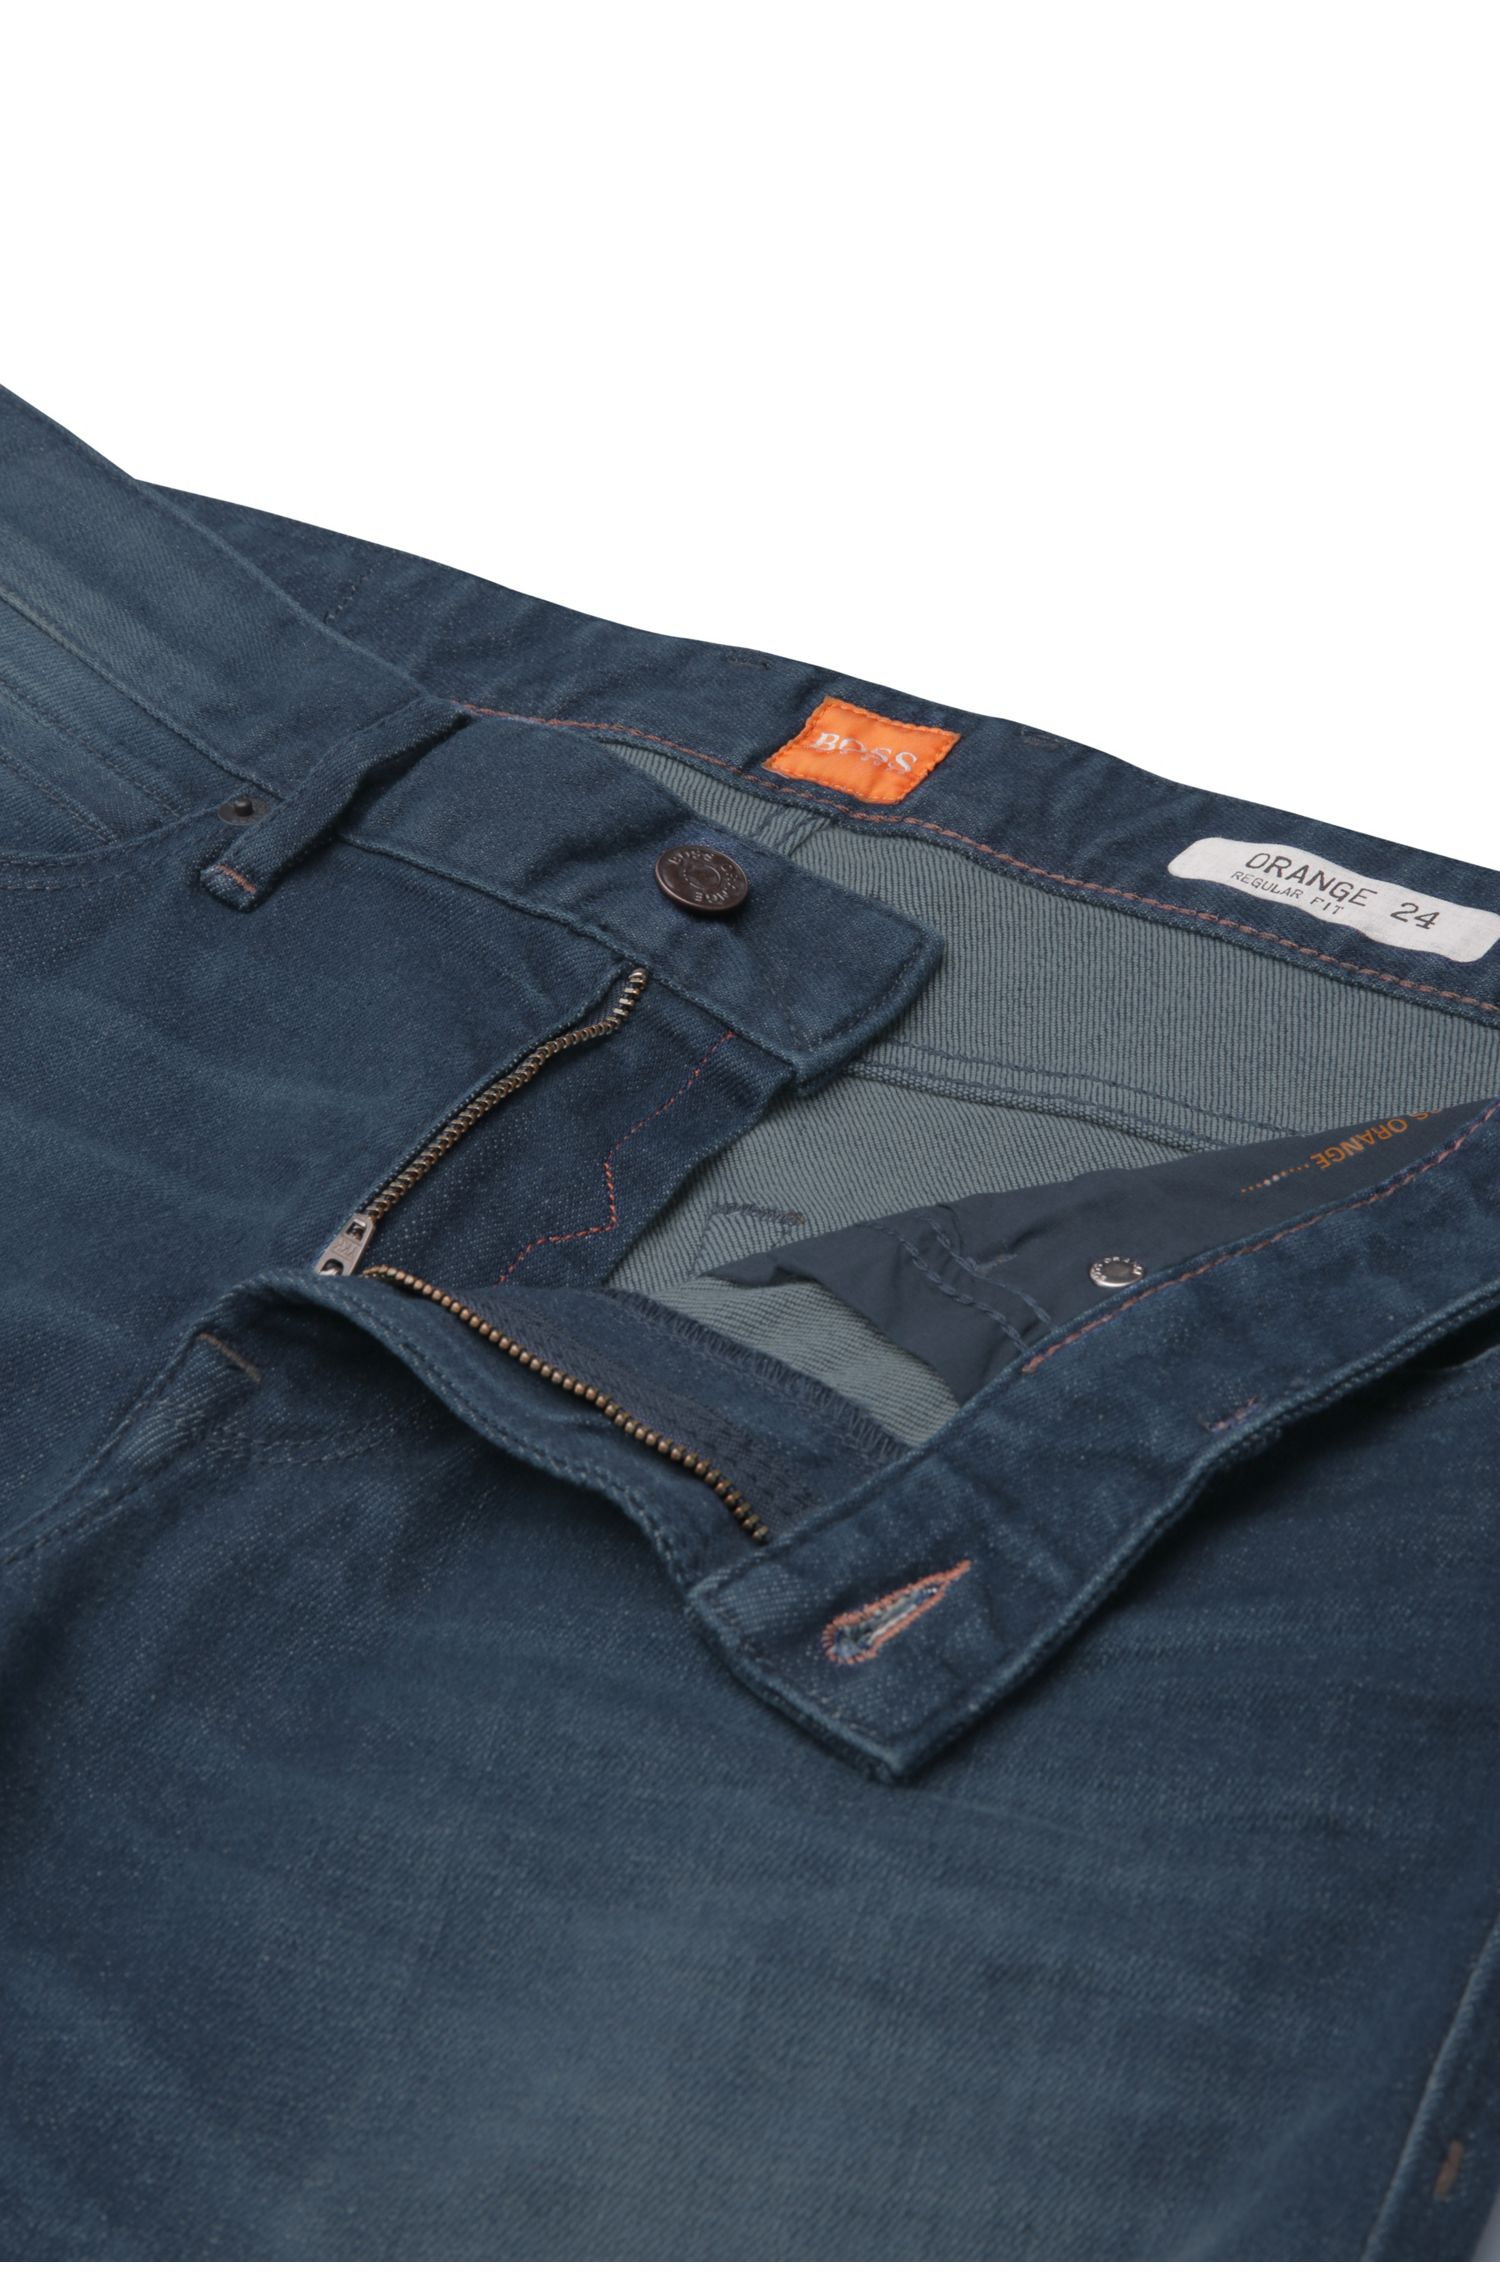 Regular-Fit Jeans aus einem Baumwoll-Mix mit Elasthan: ´Orange24 Barcelona`